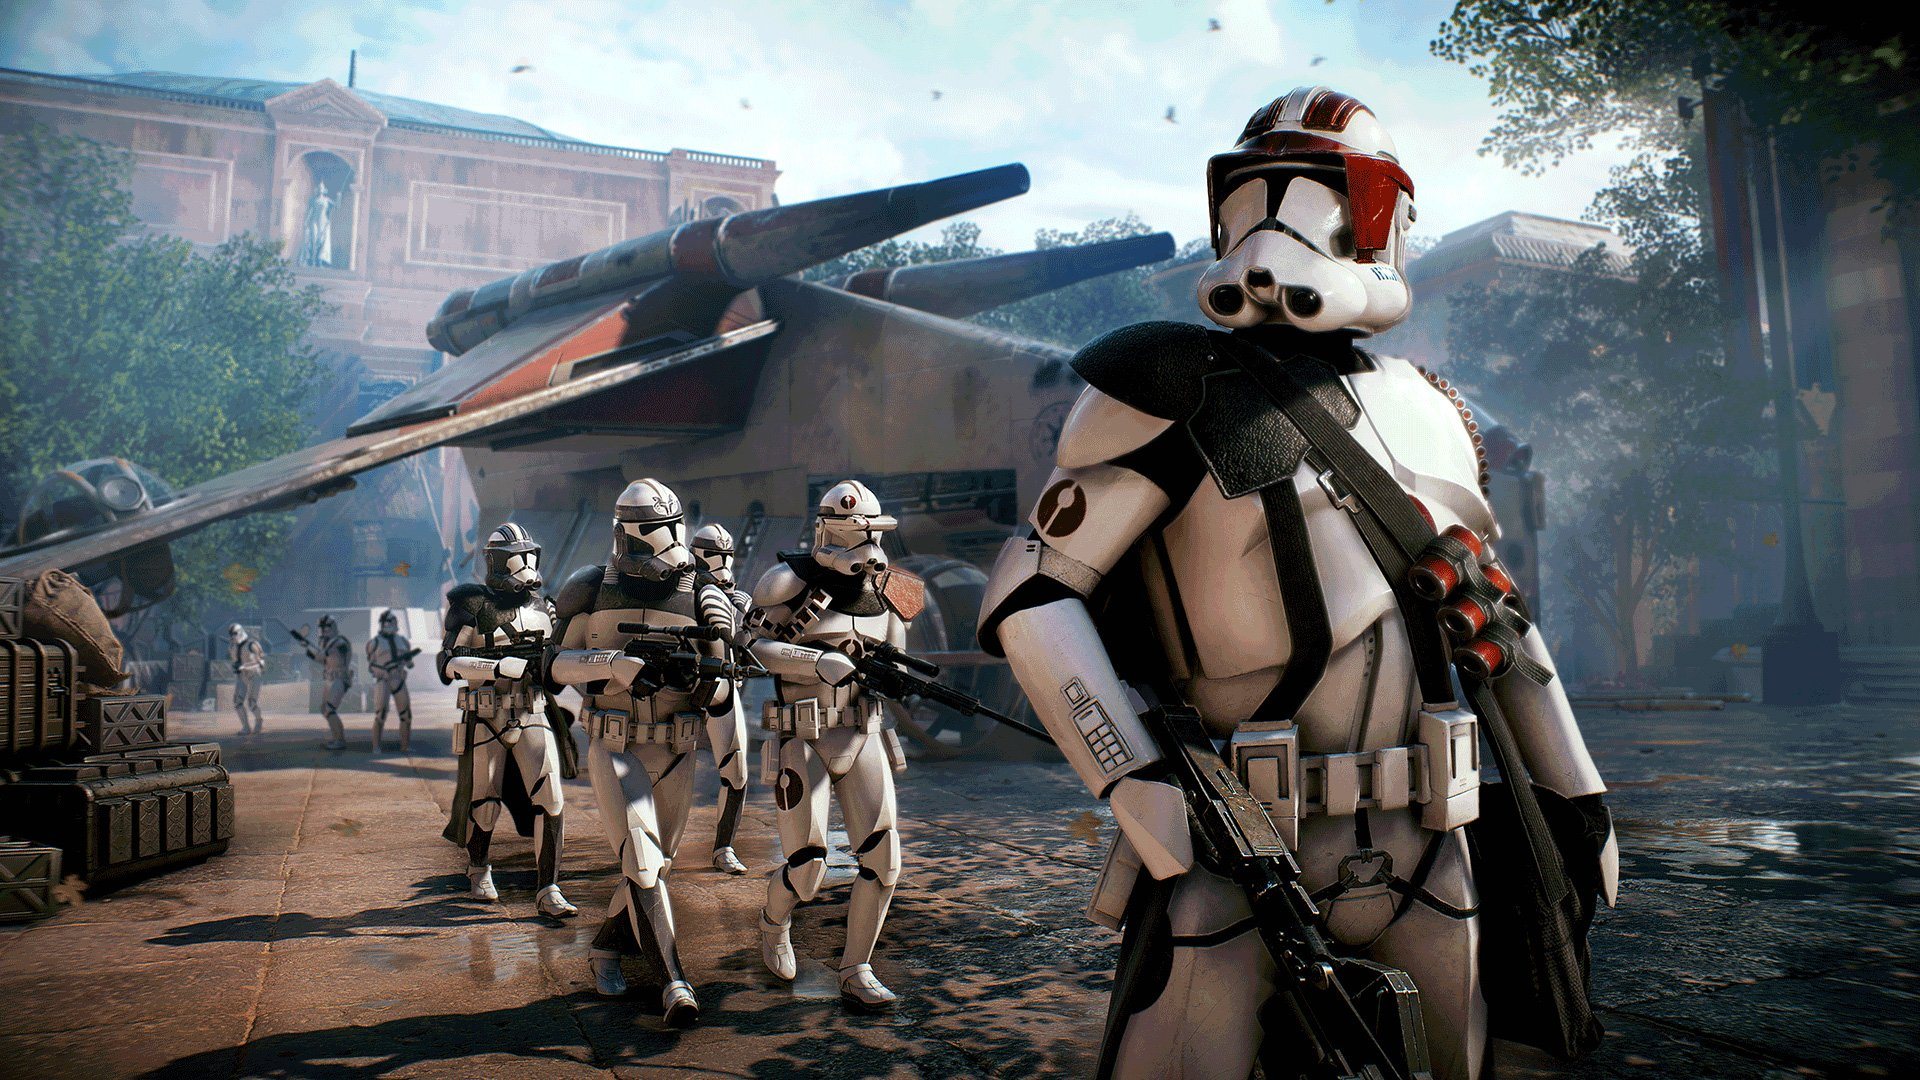 Star Wars Battlefront II is worth grabbing while it's free on PC screenshot